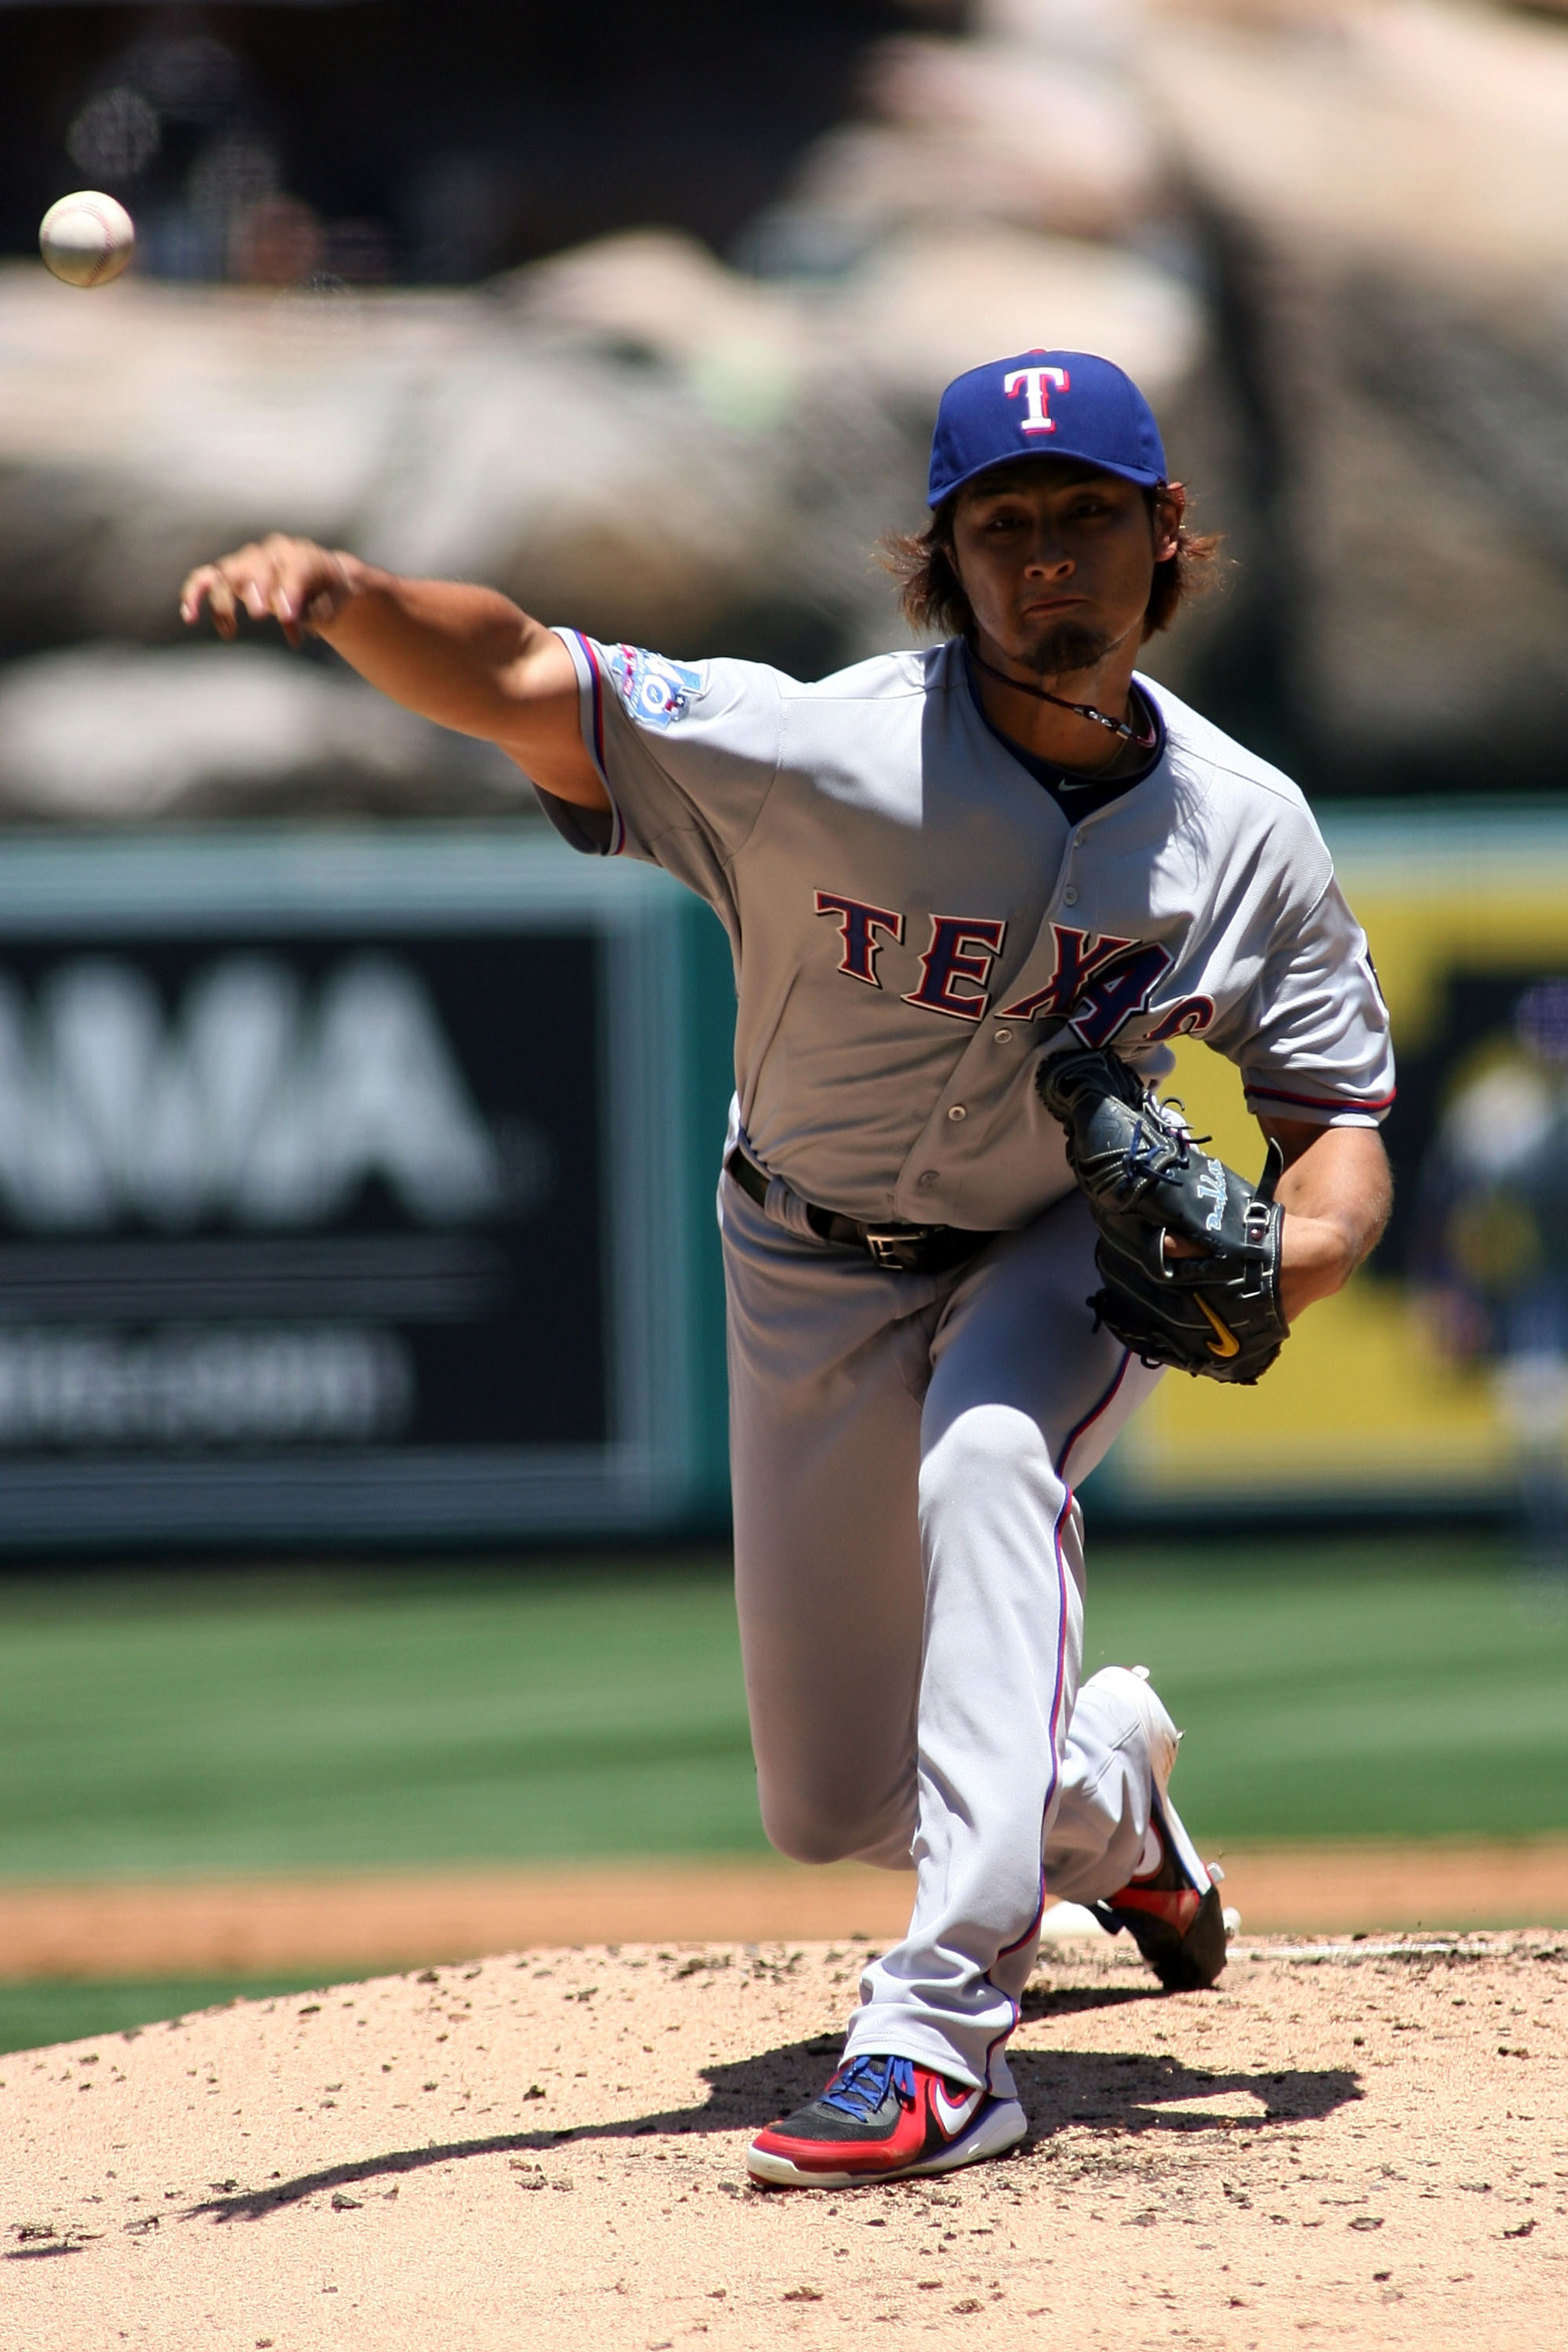 ANAHEIM, CA - JULY 21:  Yu Darvish #11 of the Texas Rangers pitches against the Los Angeles Angels of Anaheim in the first inning at Angel Stadium of Anaheim on July 21, 2012 in Anaheim, California.  (Photo by Jeff Golden/Getty Images)